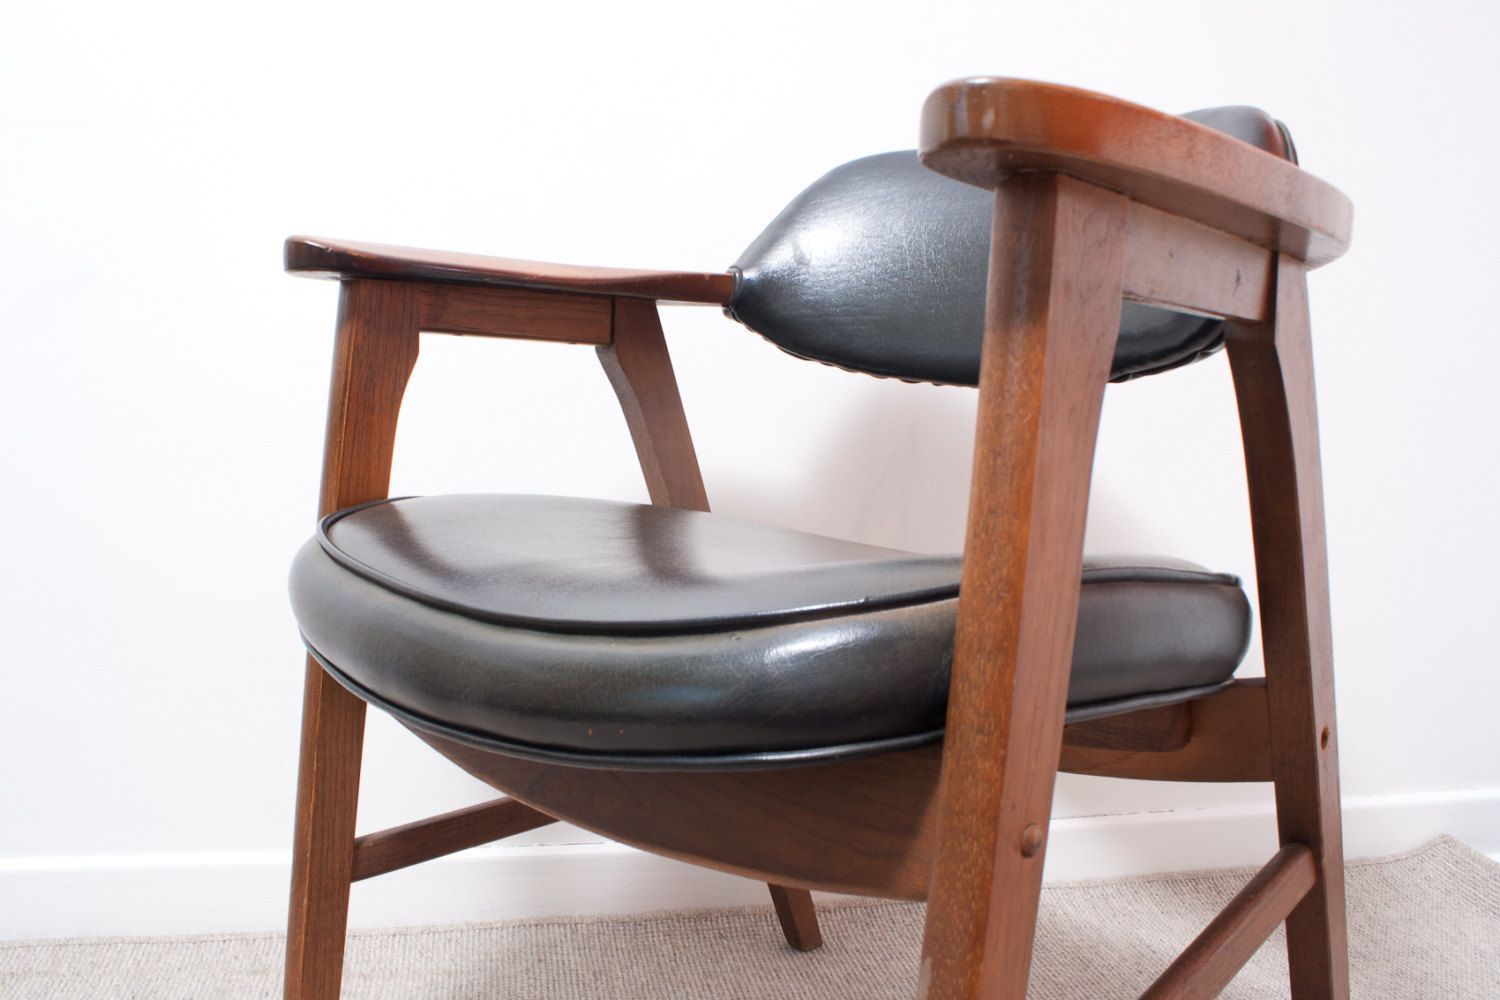 Marvelous Pair Mid Century Modern Chairs Black Gunlocke Paoli Gmtry Best Dining Table And Chair Ideas Images Gmtryco